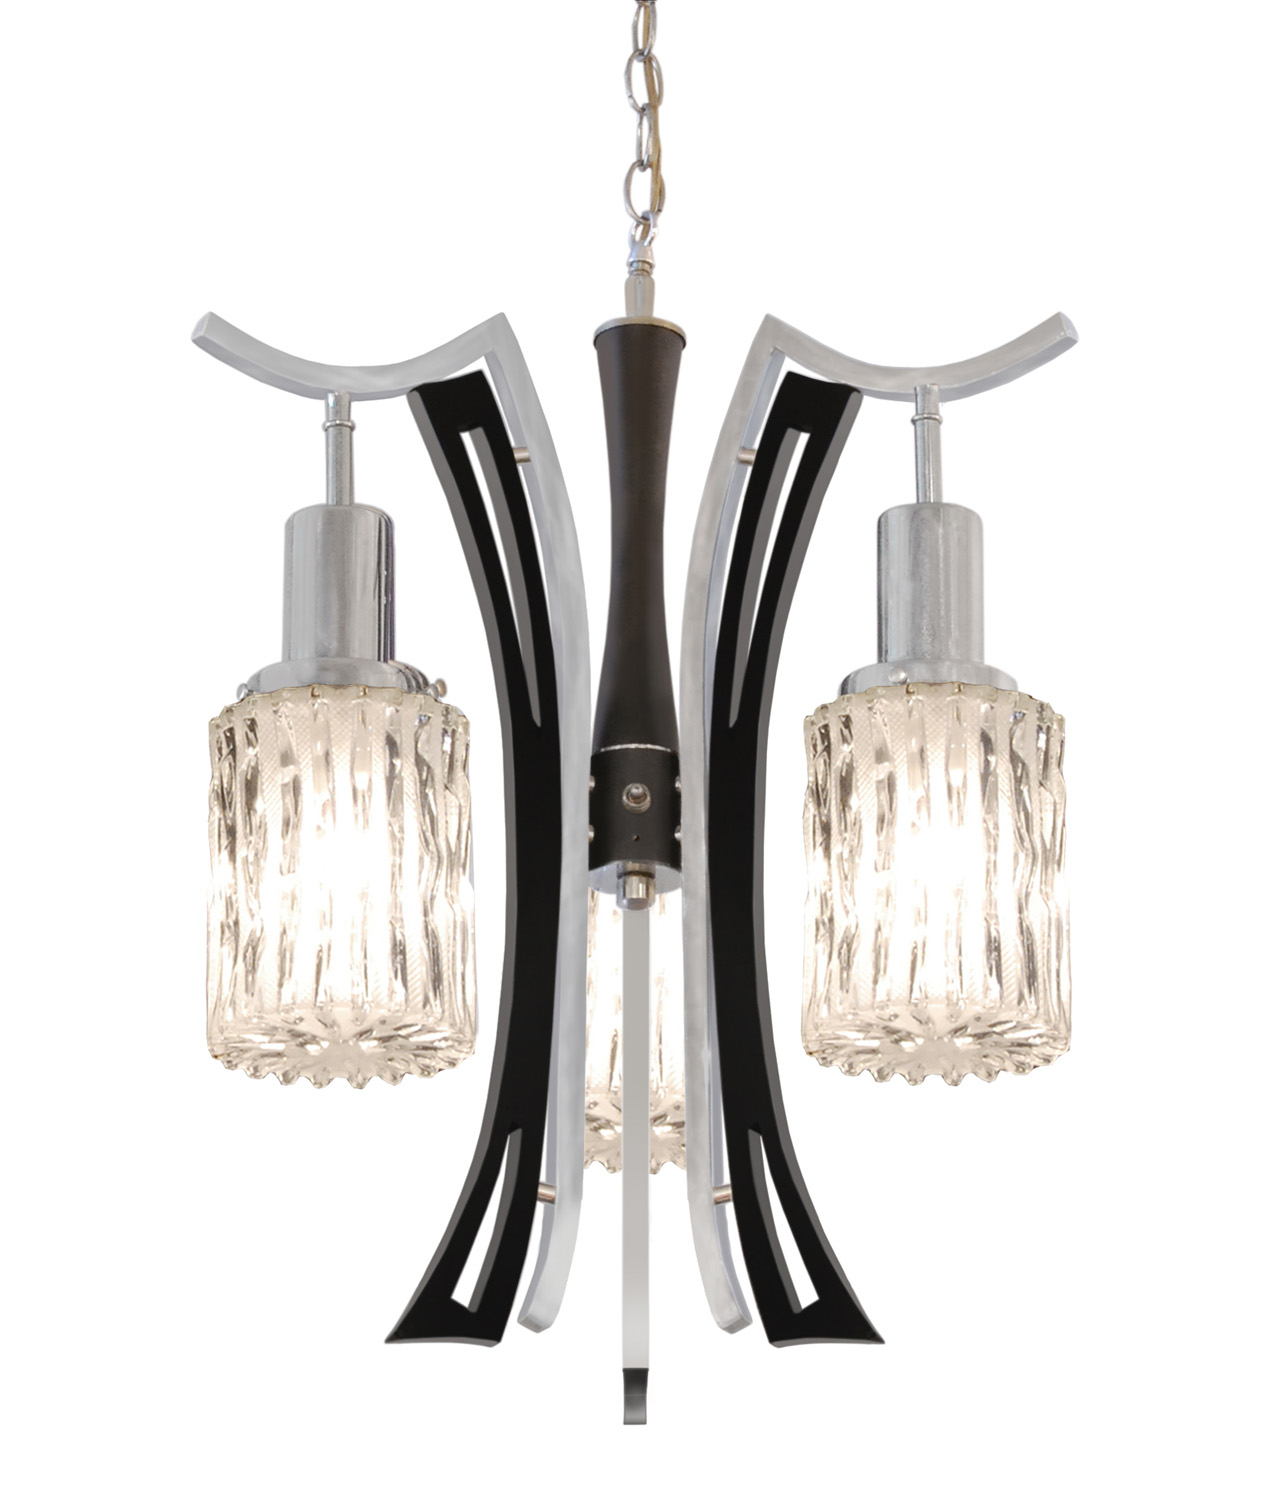 60's 35 Chinese style blk+3glass chandelier161 hires.jpg